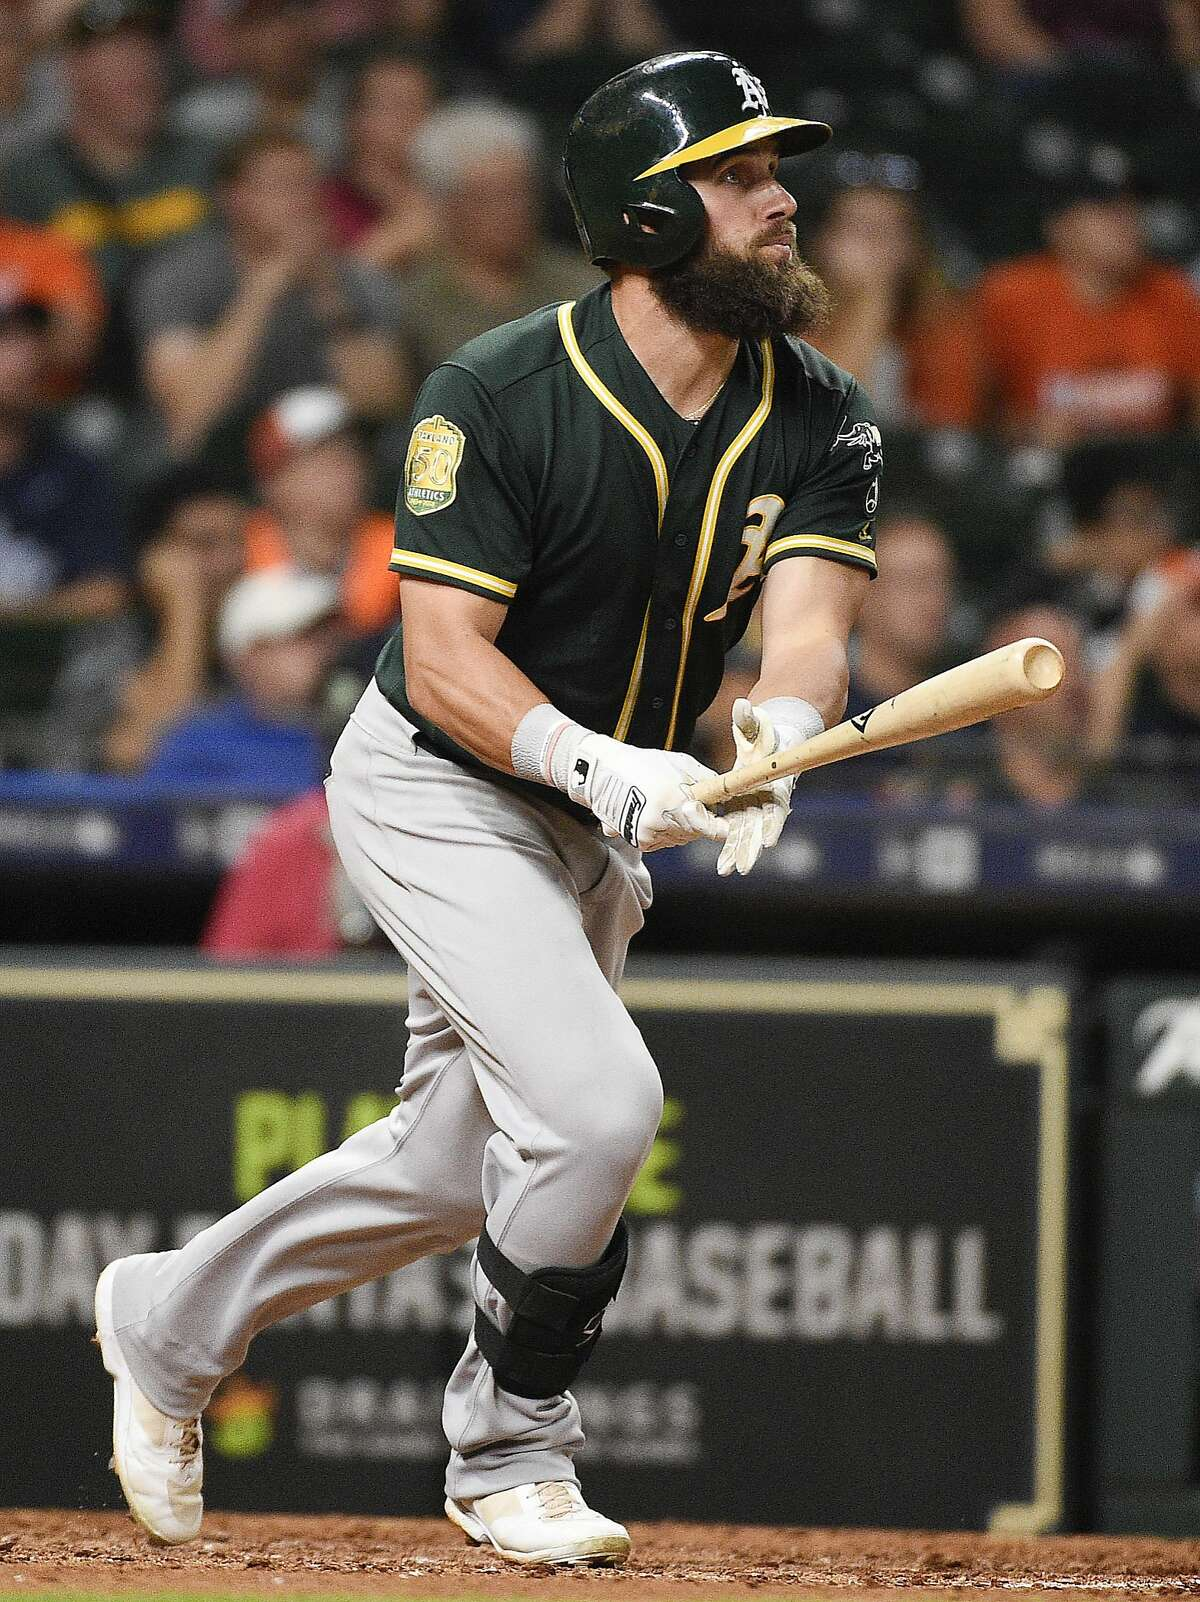 Oakland Athletics' Nick Martini watches his RBI double during the ninth inning of a baseball game against the Houston Astros, Tuesday, Aug. 28, 2018, in Houston. (AP Photo/Eric Christian Smith)